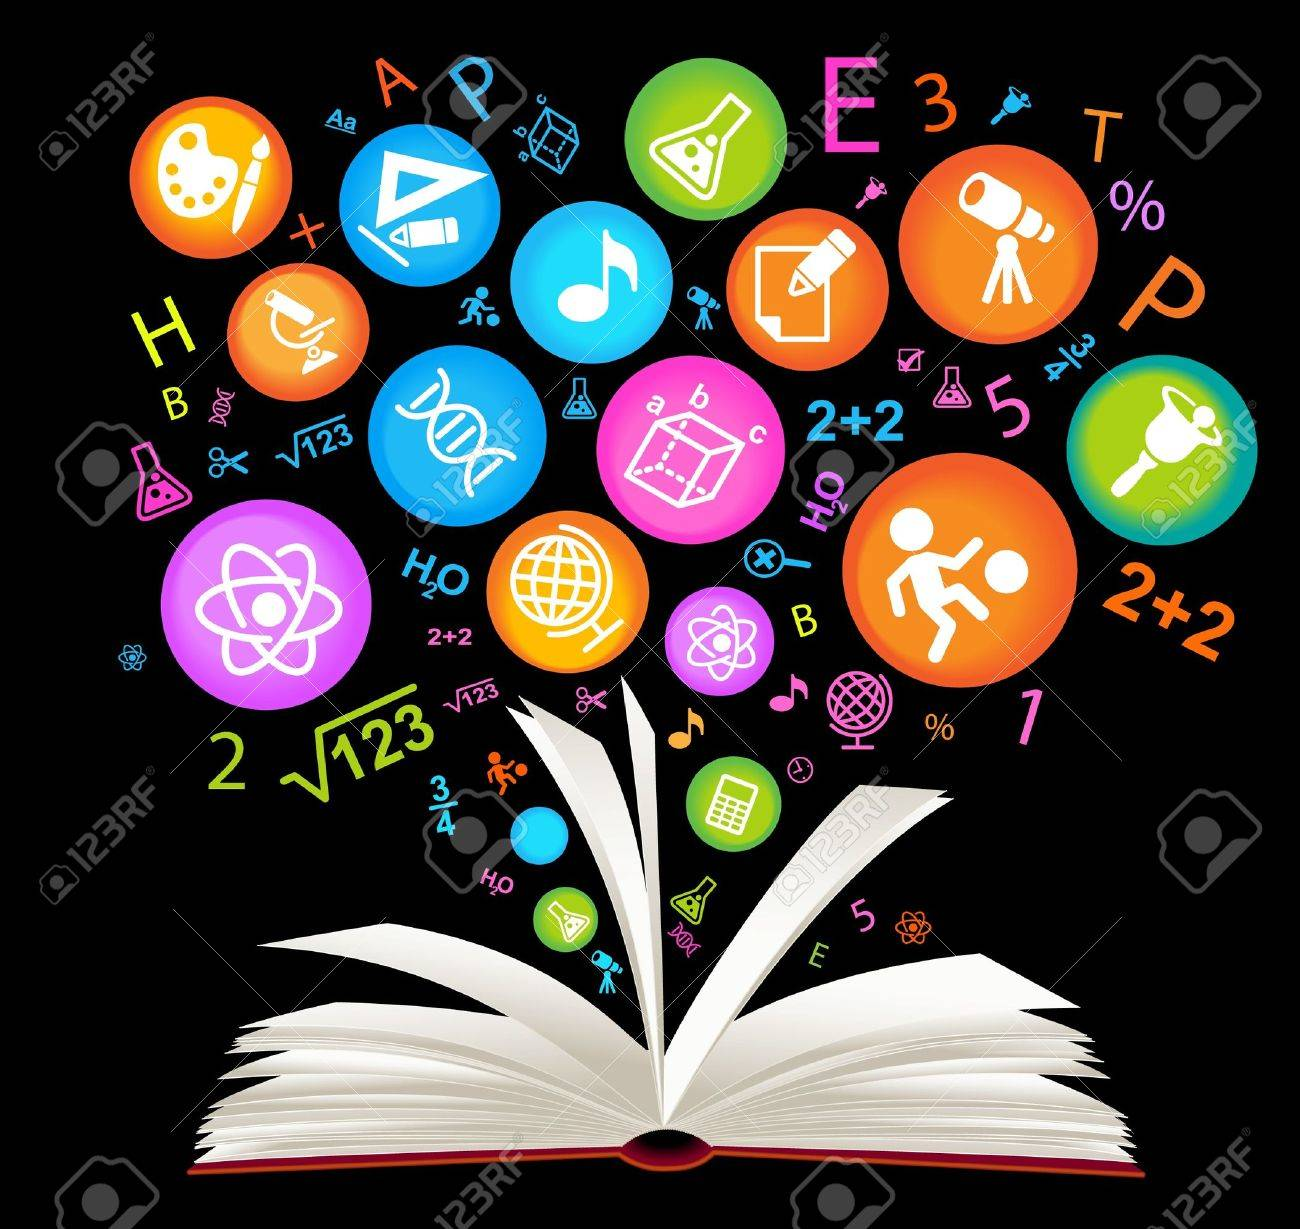 symbol for literature the r word has no place in literature  book symbol the school of sciences royalty cliparts vectors vector book symbol the school of sciences